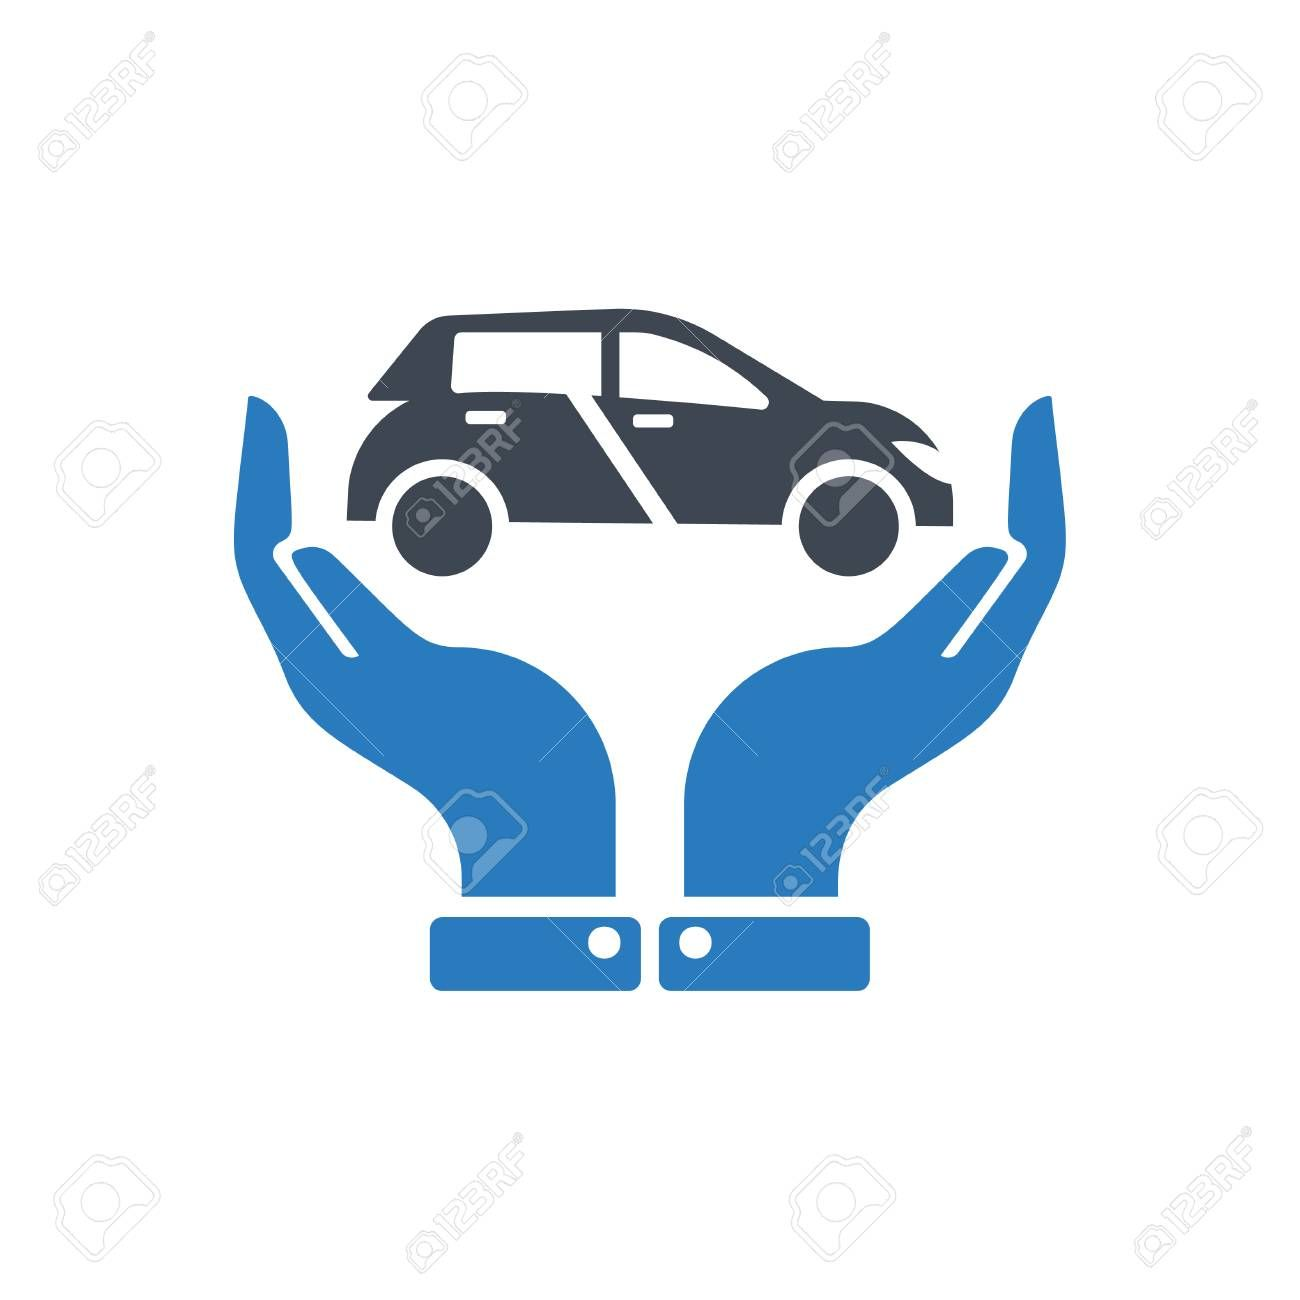 Hands Holding Car Auto Insurance Icon Vector Transport